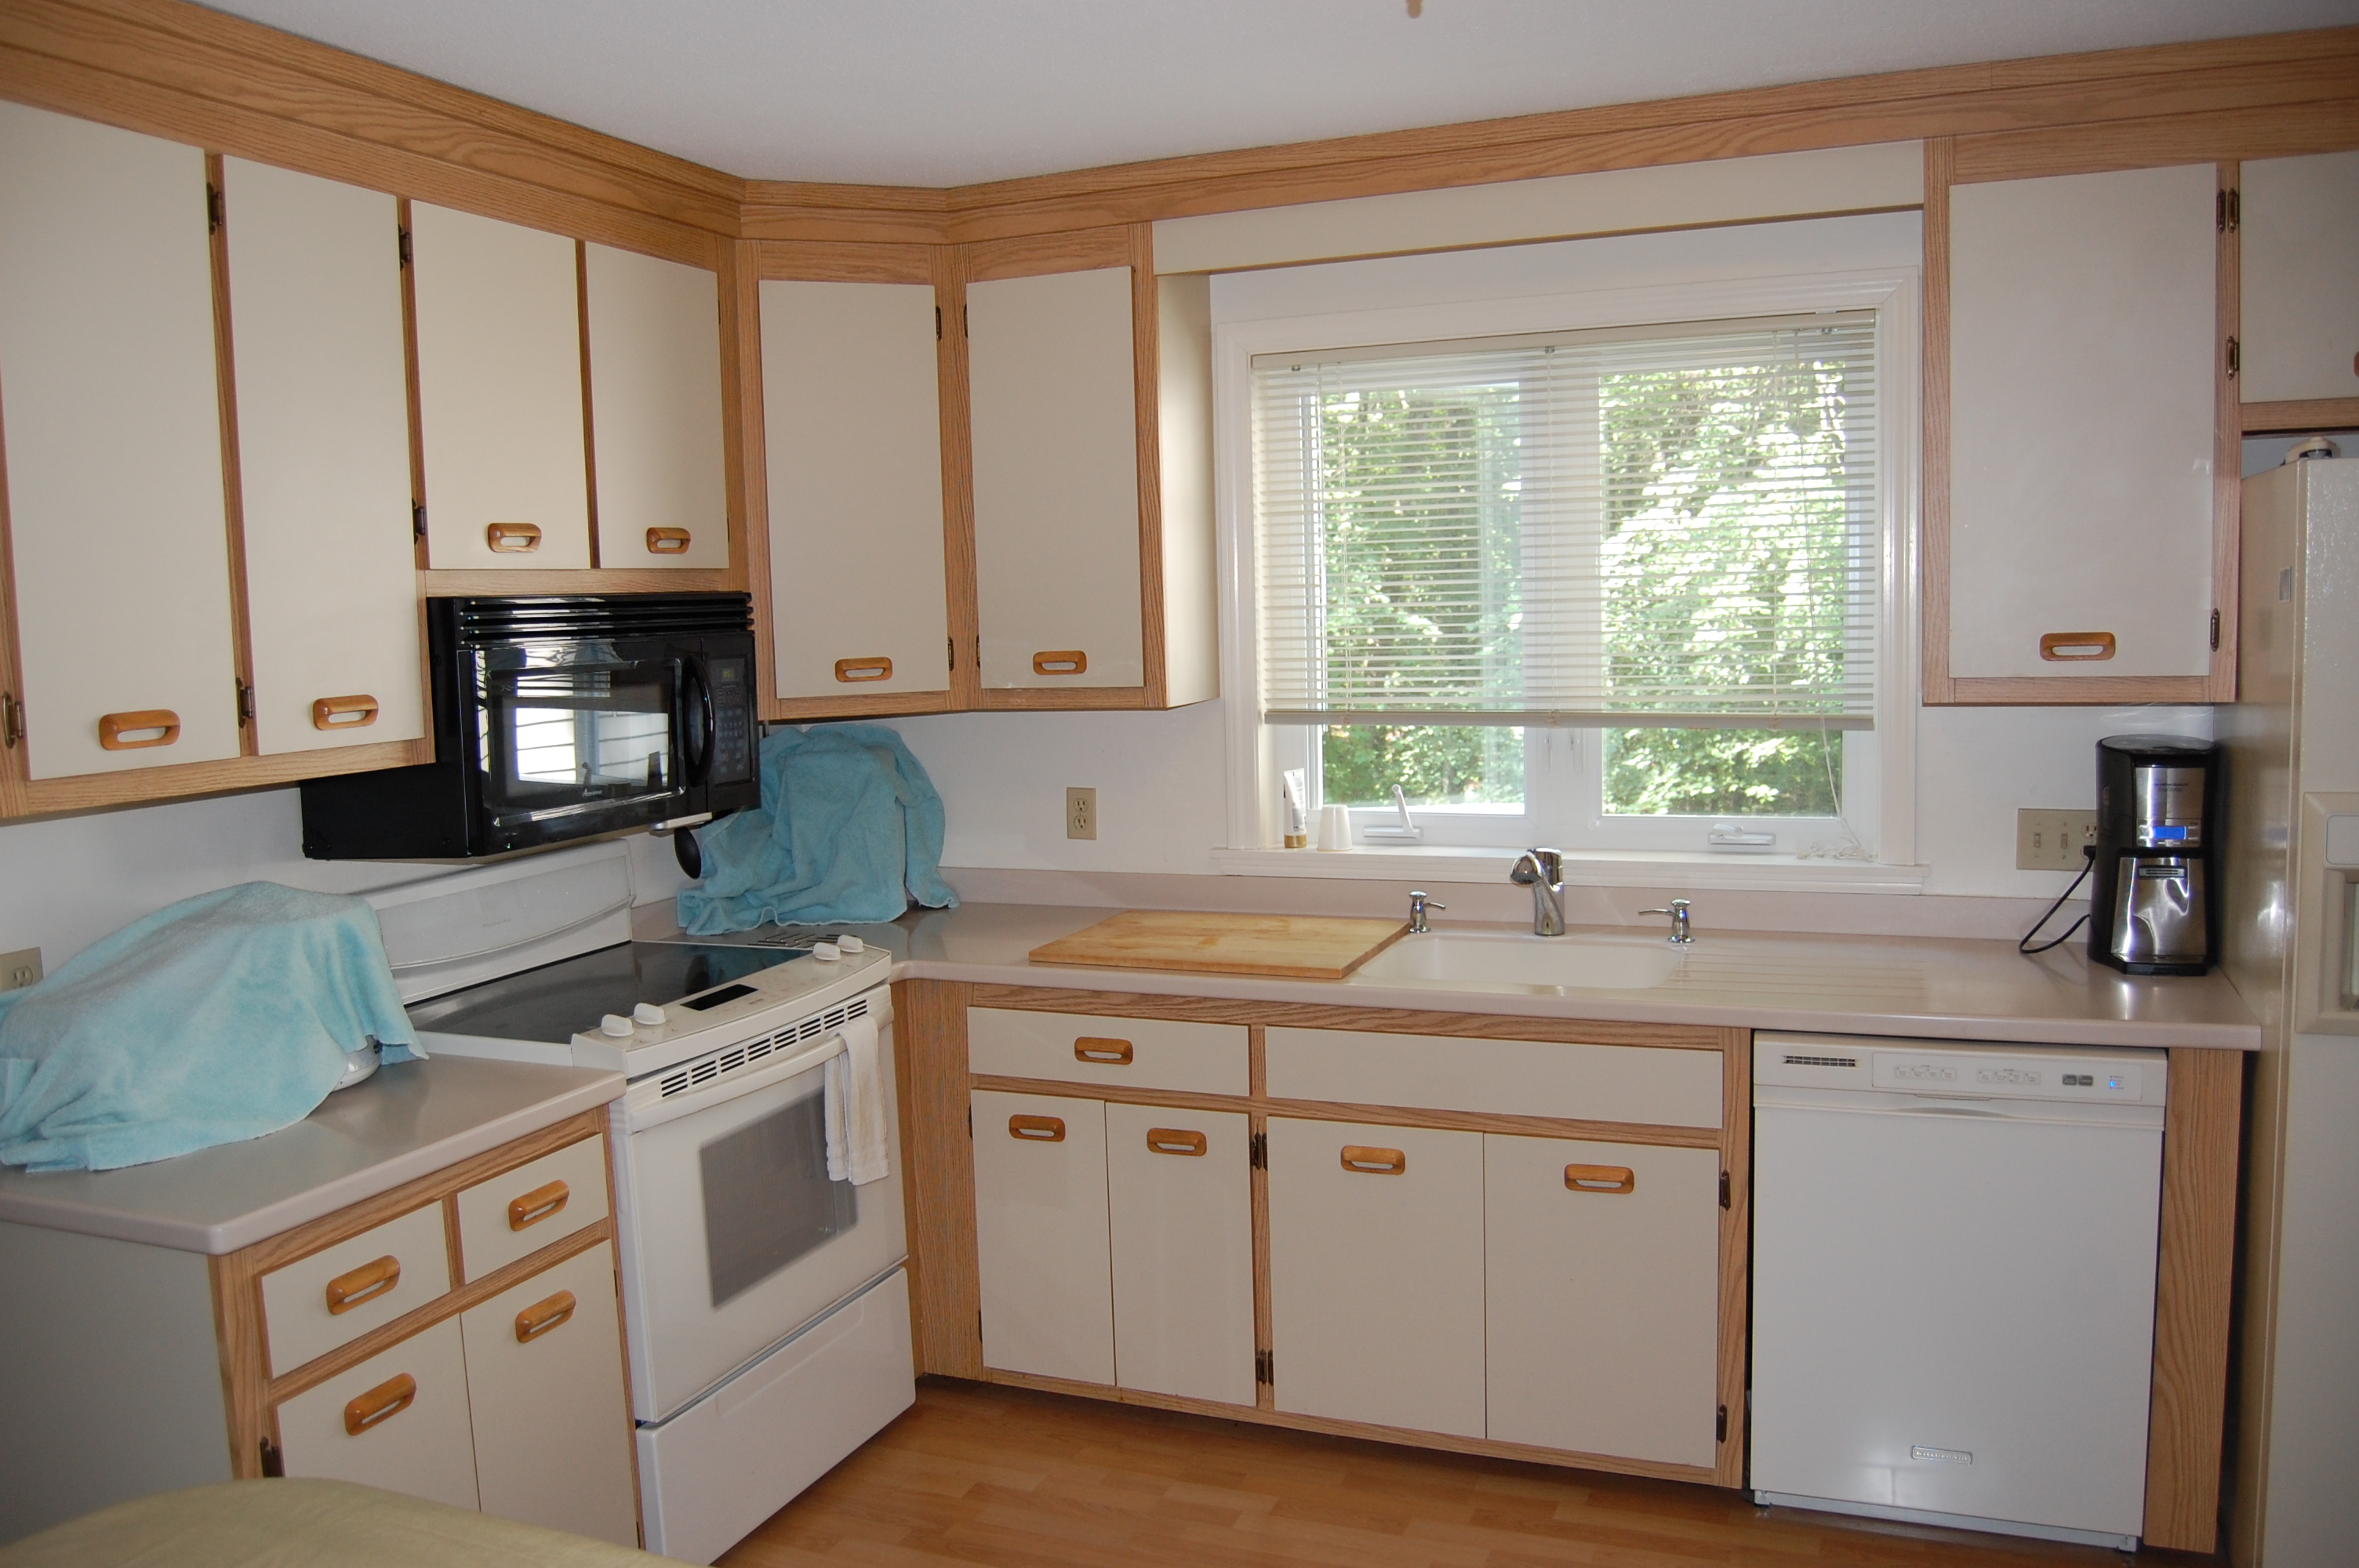 refacing oak kitchen cabinets to white kitchen cabinets refacing December Narendraenterprises